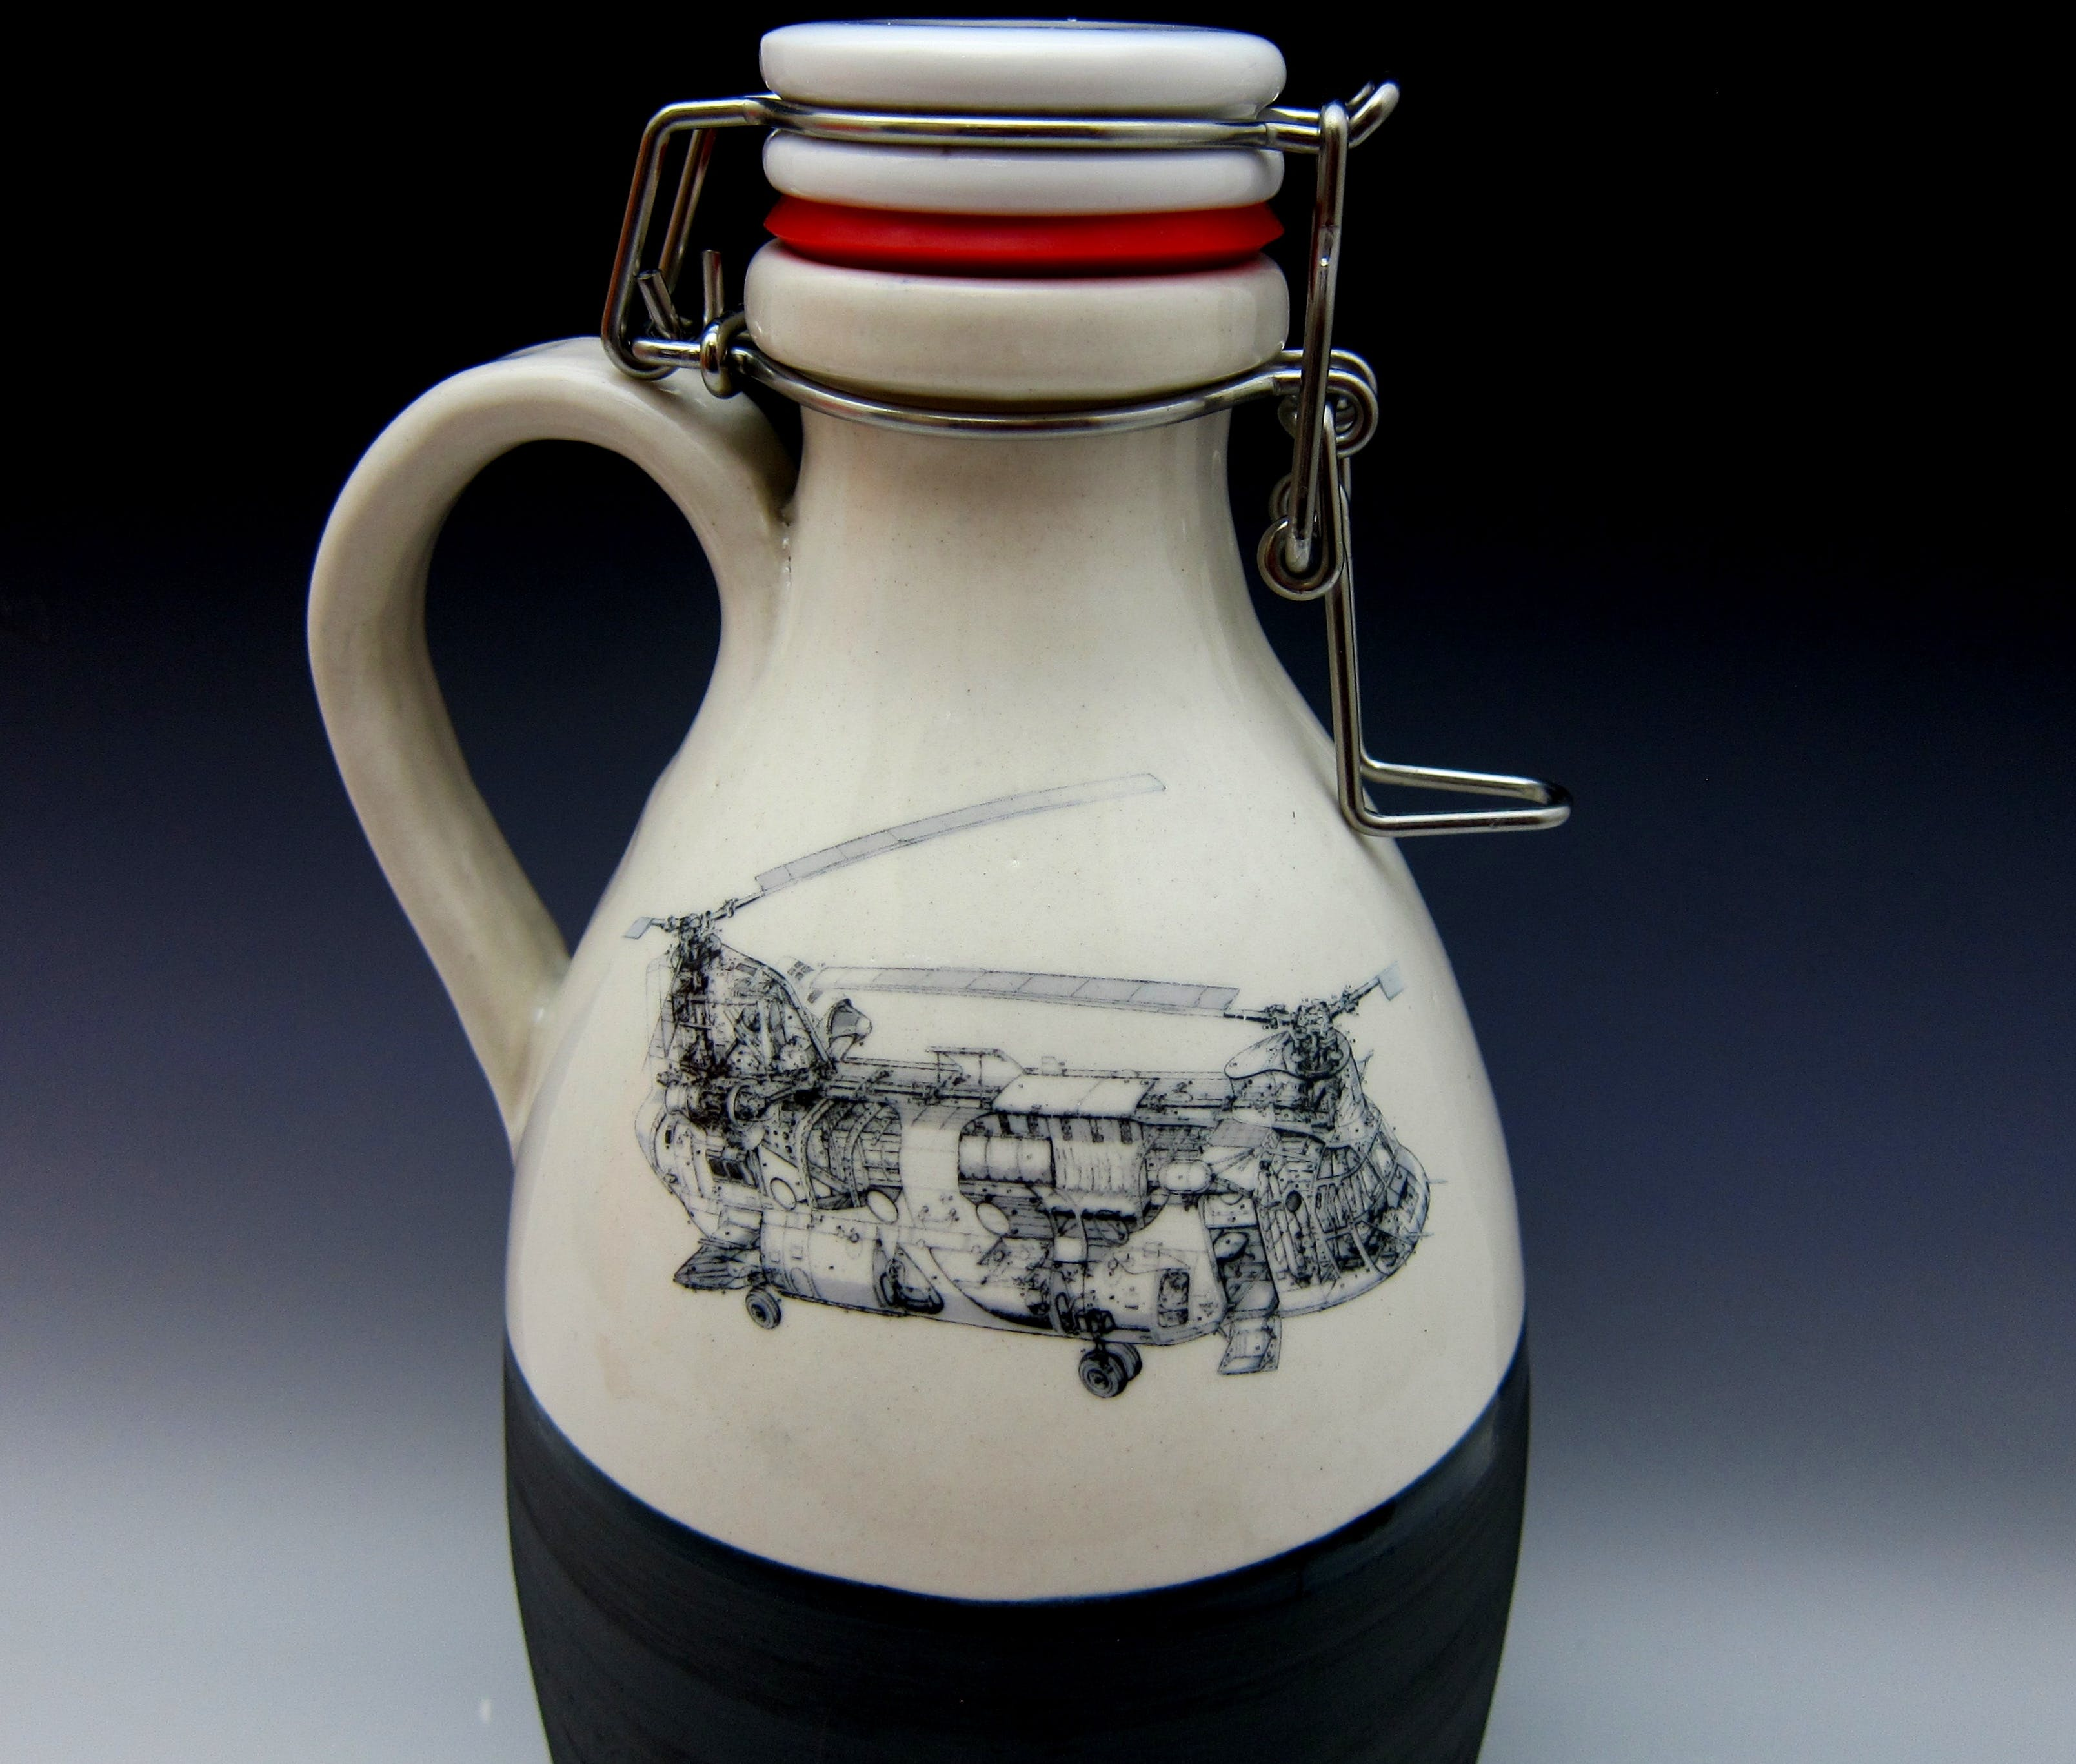 64oz Ceramic Growlers with logo Growler sold by Hand Crafted Growlers